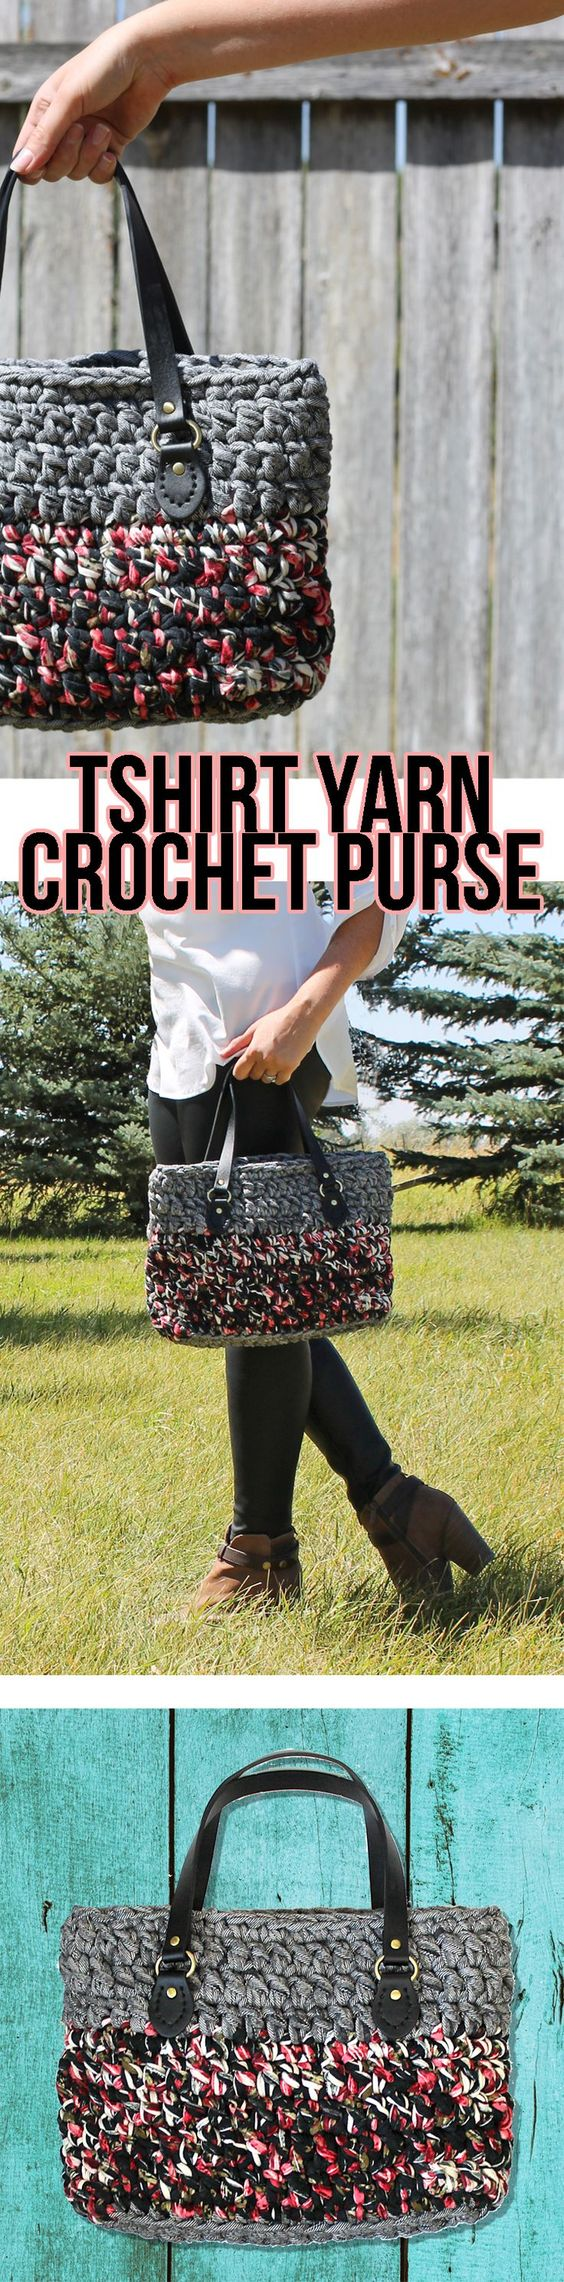 This cute handmade bag is crocheted from t-shirt yarn. The free crochet pattern with pictures makes it easy to learn.: